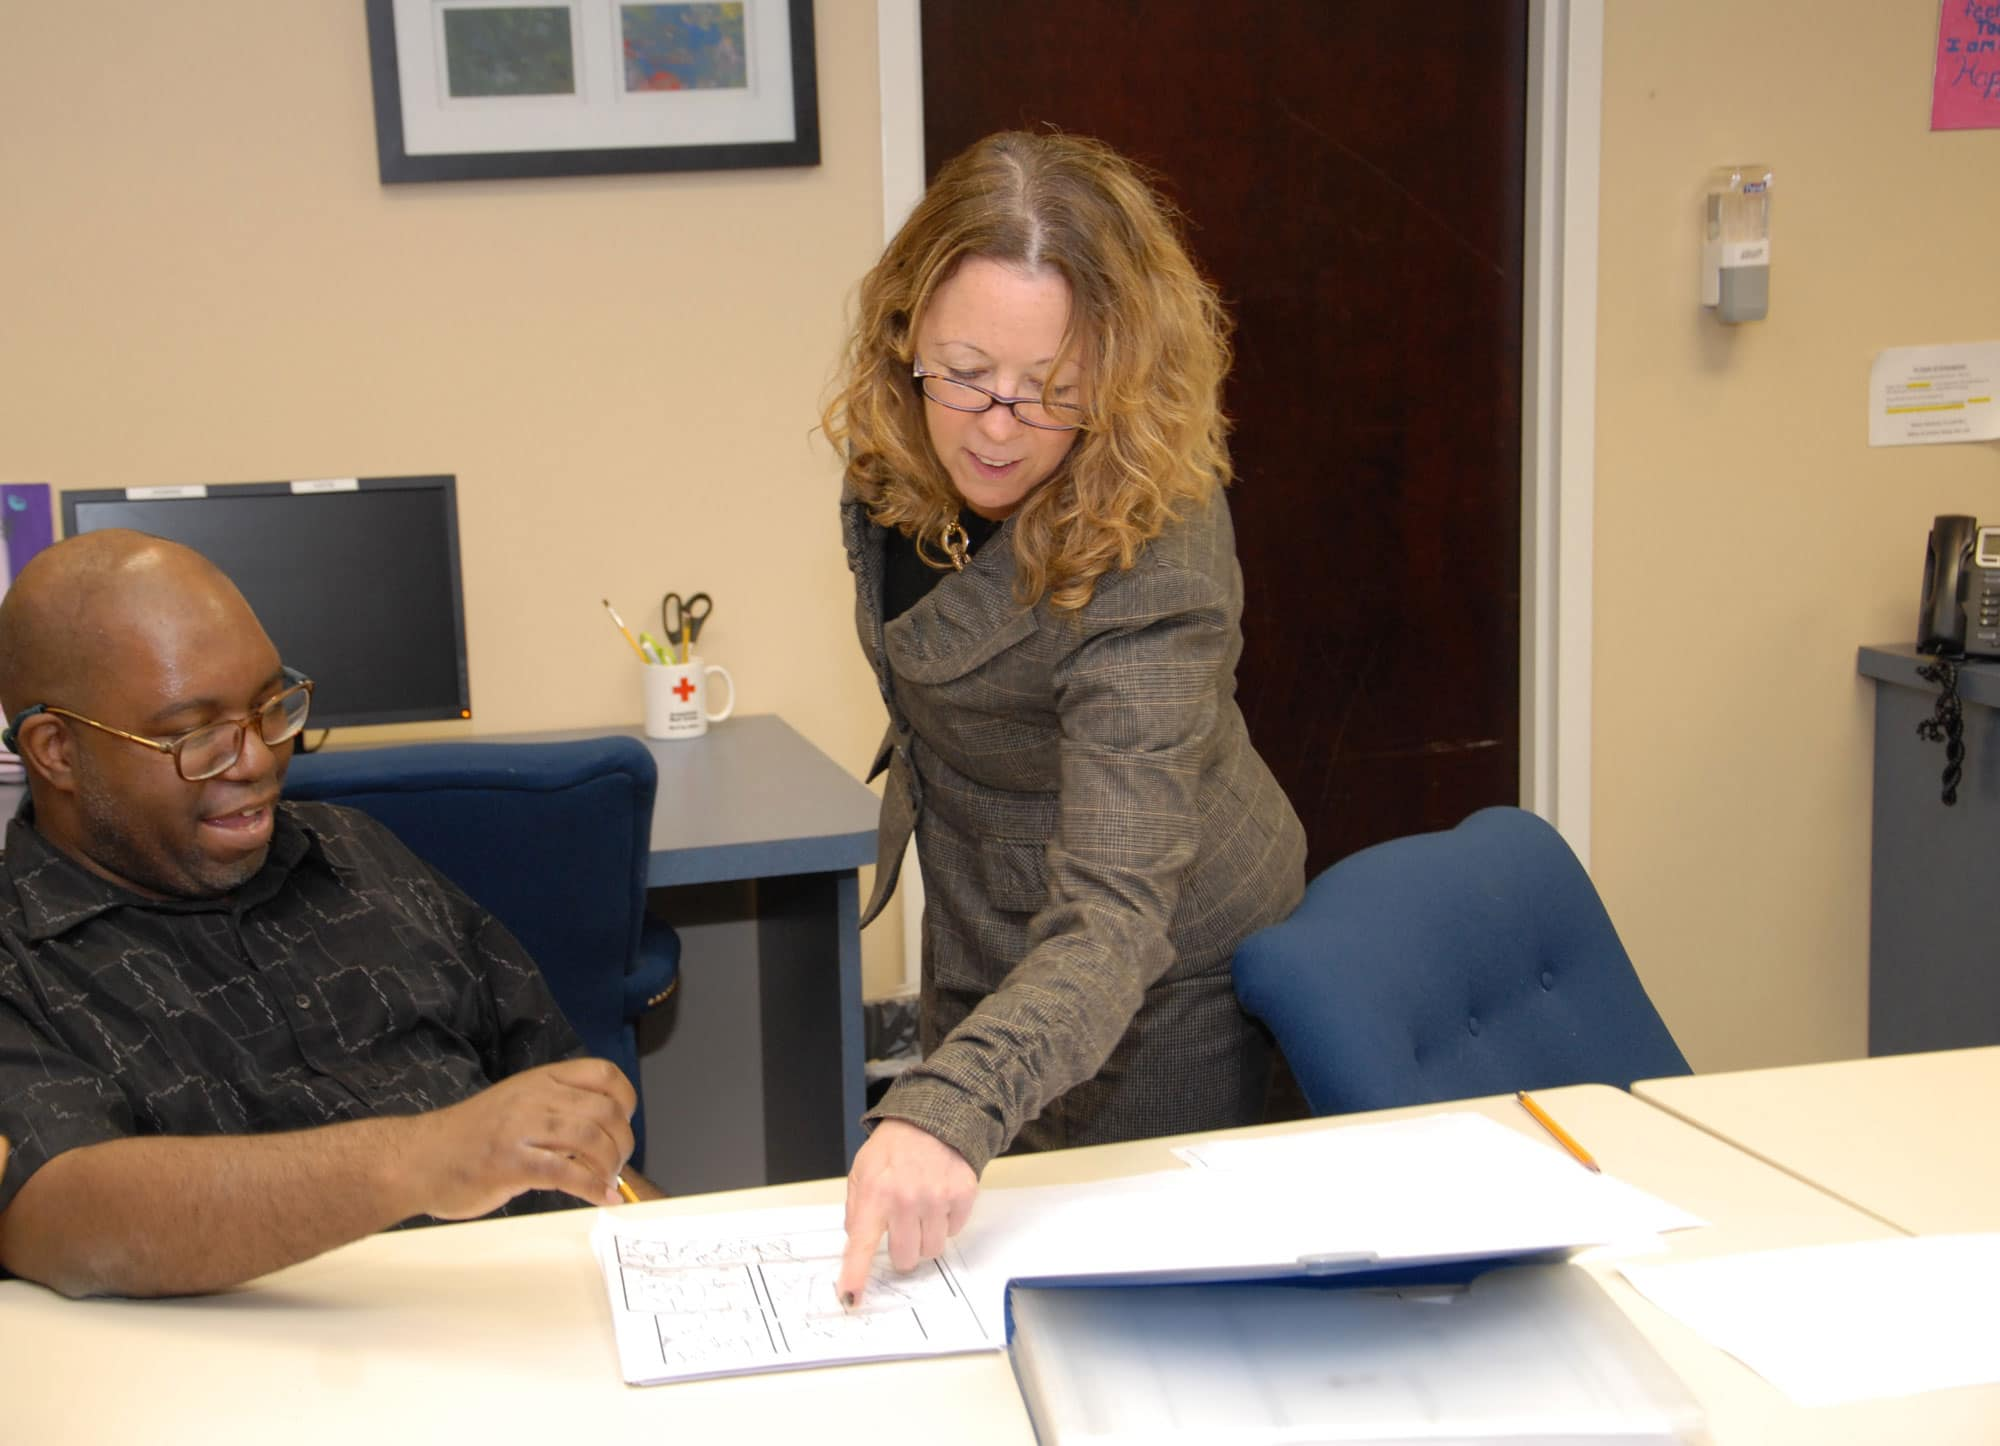 Eddie W., an employee at the Daily Plan It in Princeton, shows Elizabeth Connolly his comic book drawings.